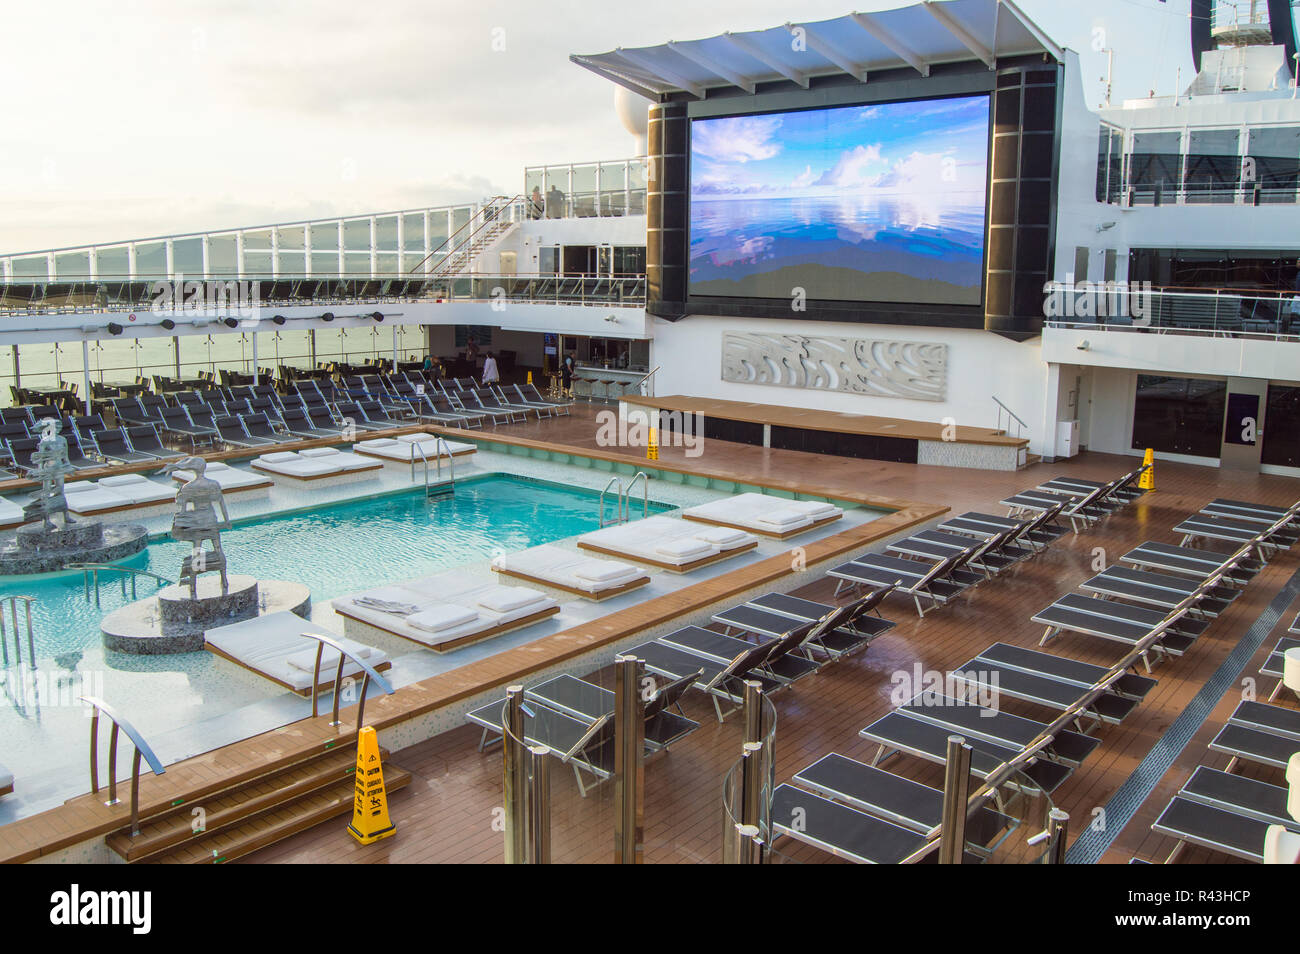 Outdoor deck with swimming pool, sun beds, video screen. CRUISE ship MSC Meraviglia, 8 October 2018. - Stock Image